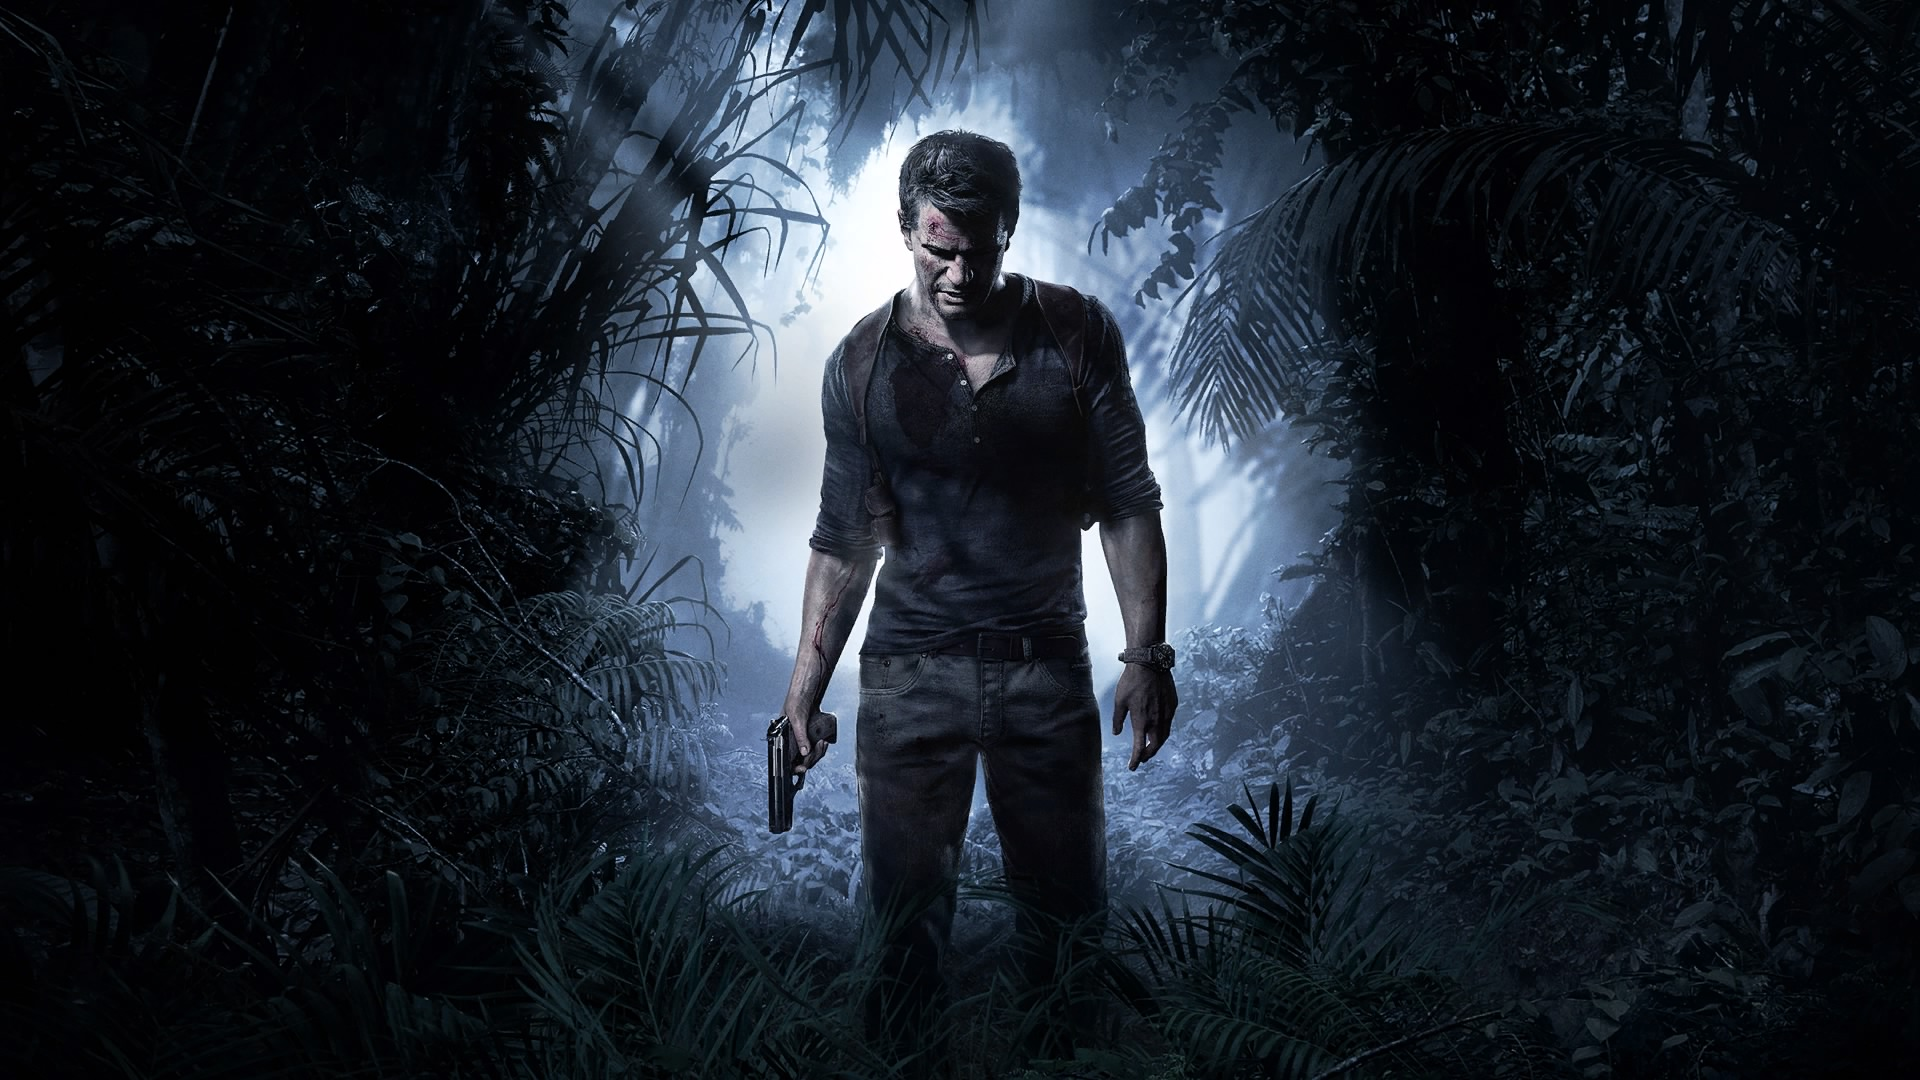 'Uncharted' Movie Gets a New Director